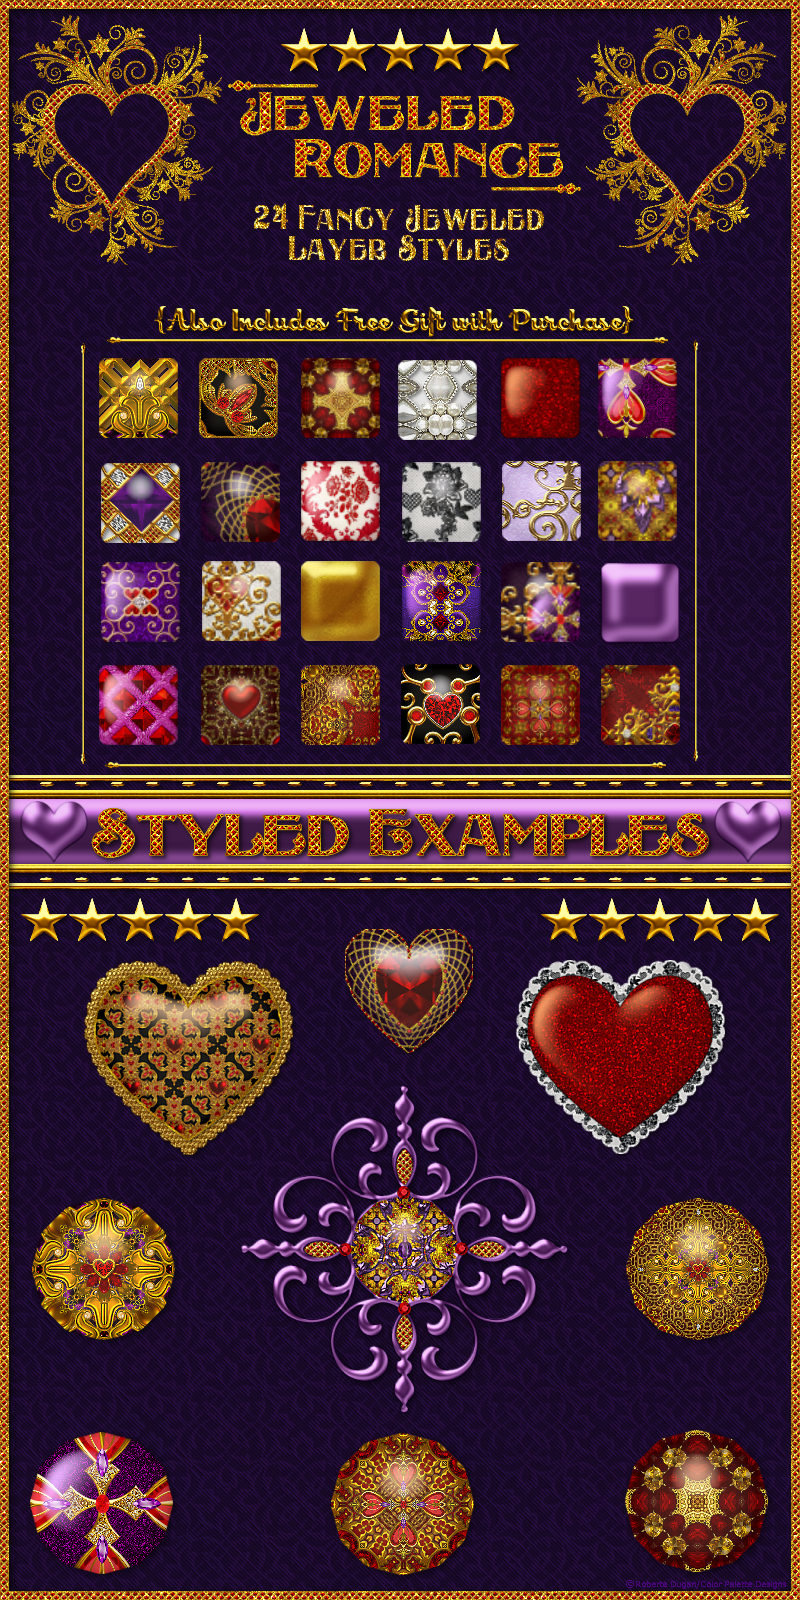 Jeweled Romance-Layer Styles with Free Gift